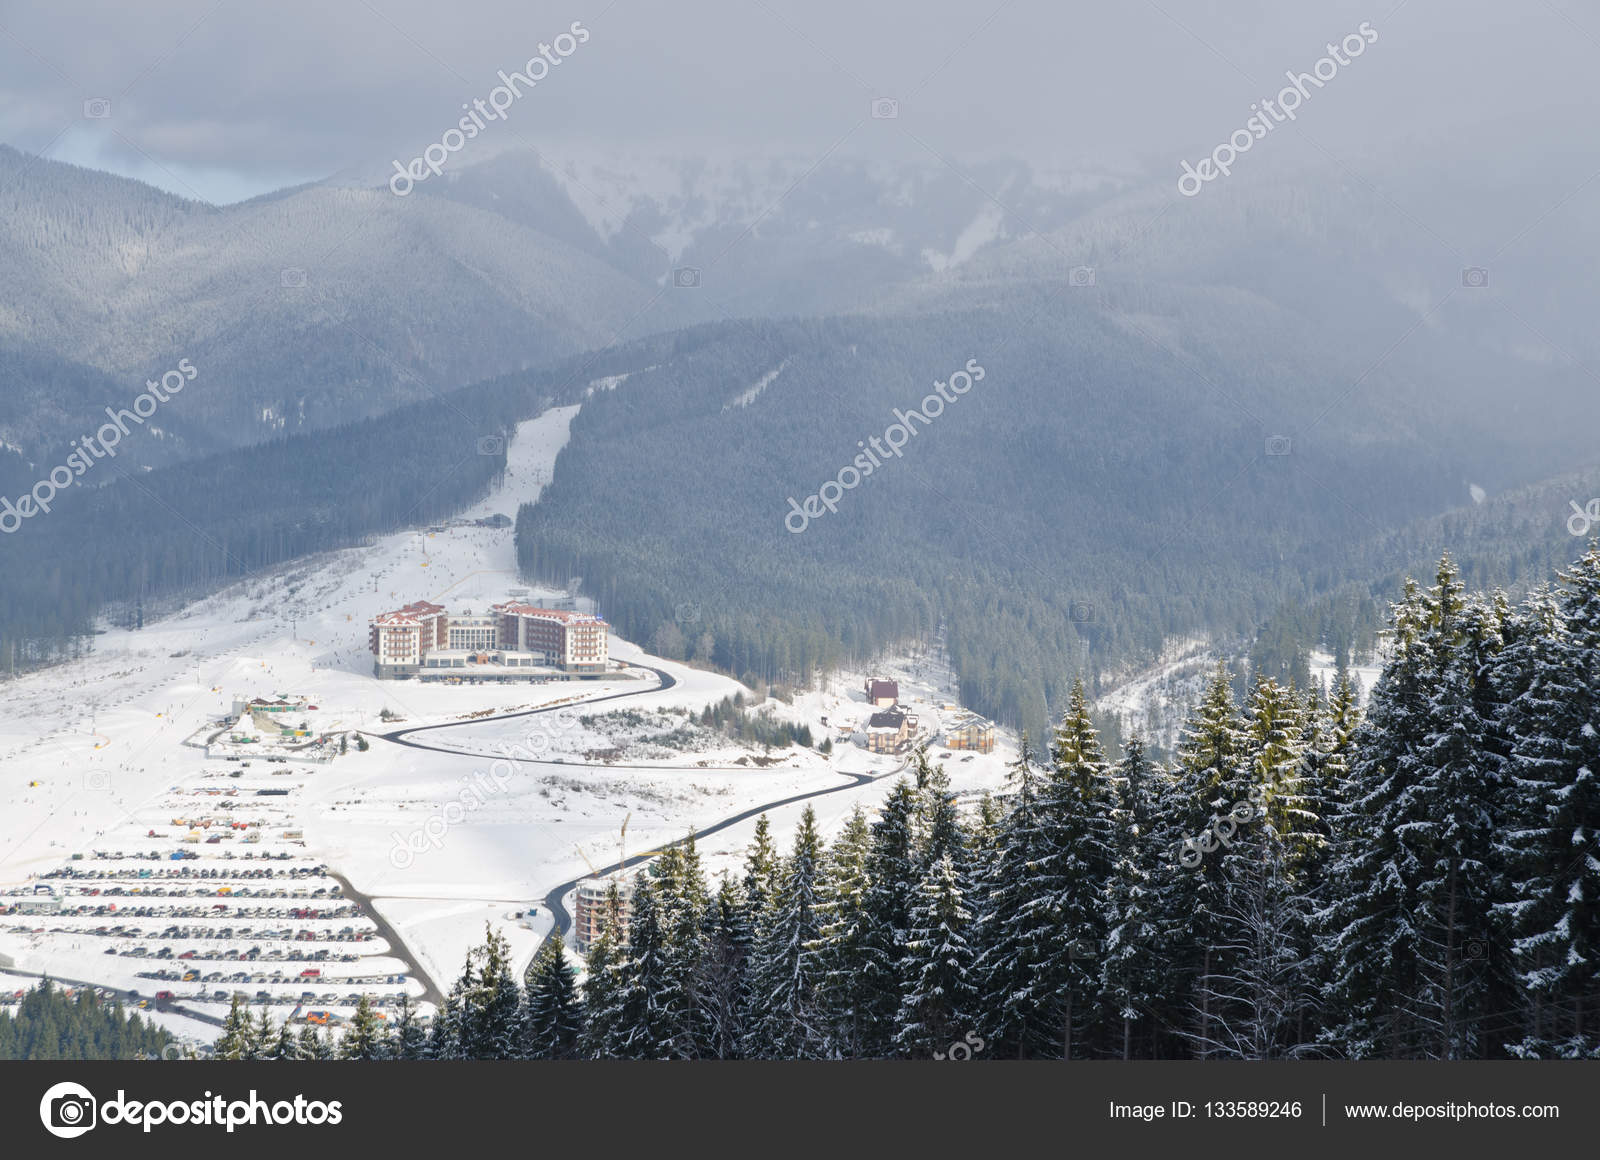 panorama of snowy mountains and forest in a ski resort. weather in